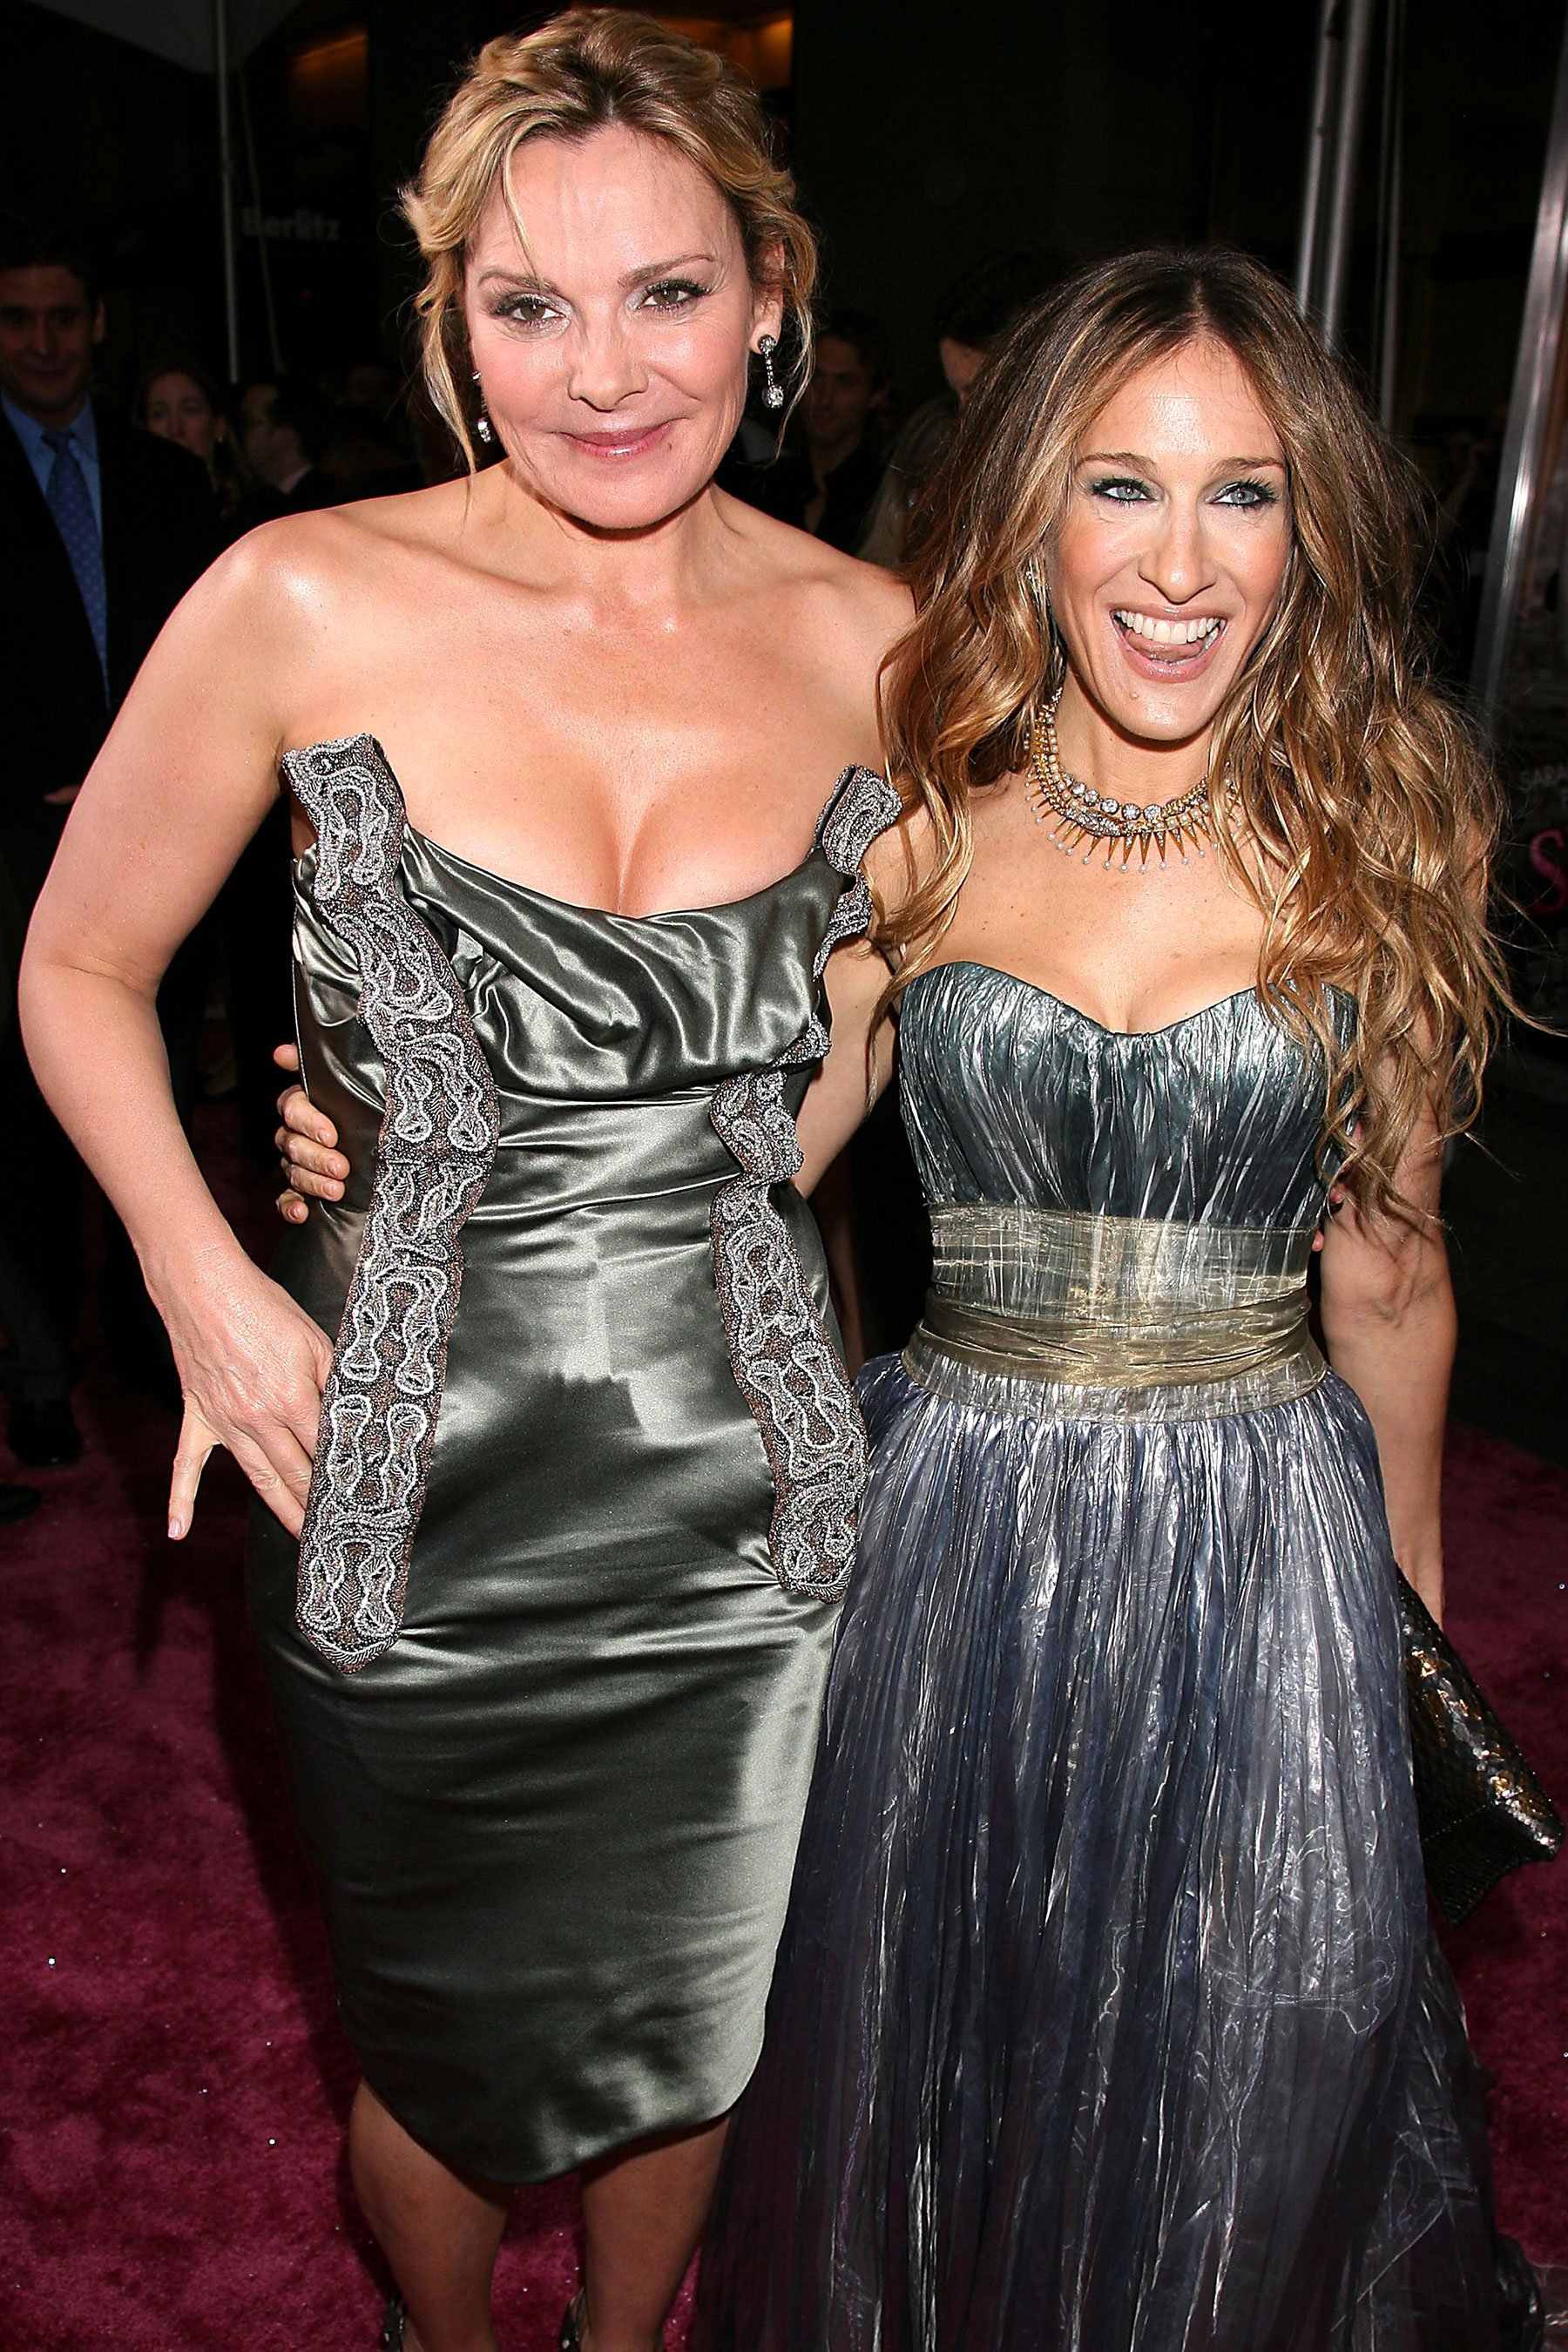 Sarah Jessica Parker says there's no feud between her and Kim Cattrall